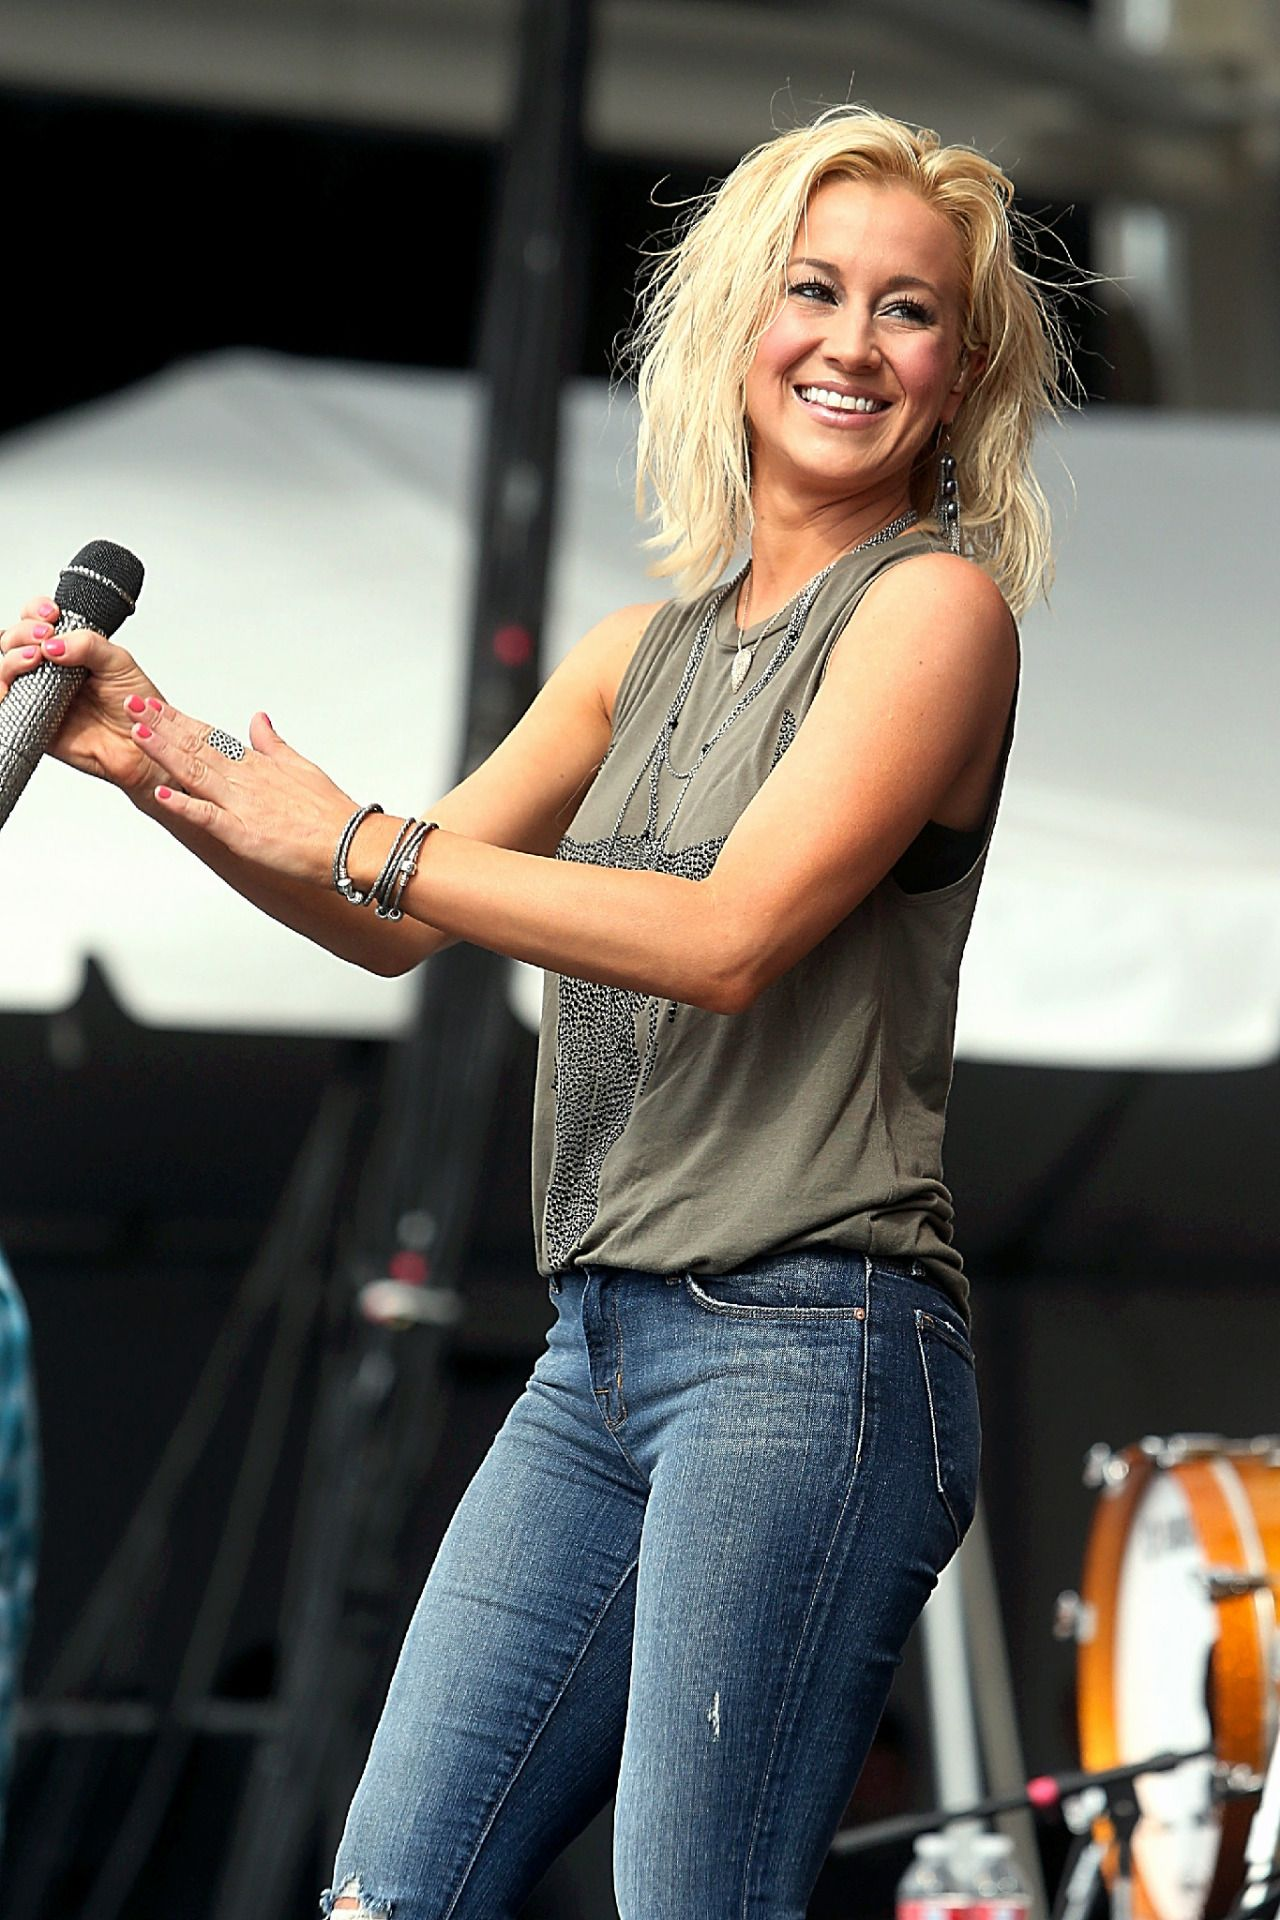 Kellie Pickler Play me some Country Music in 2019